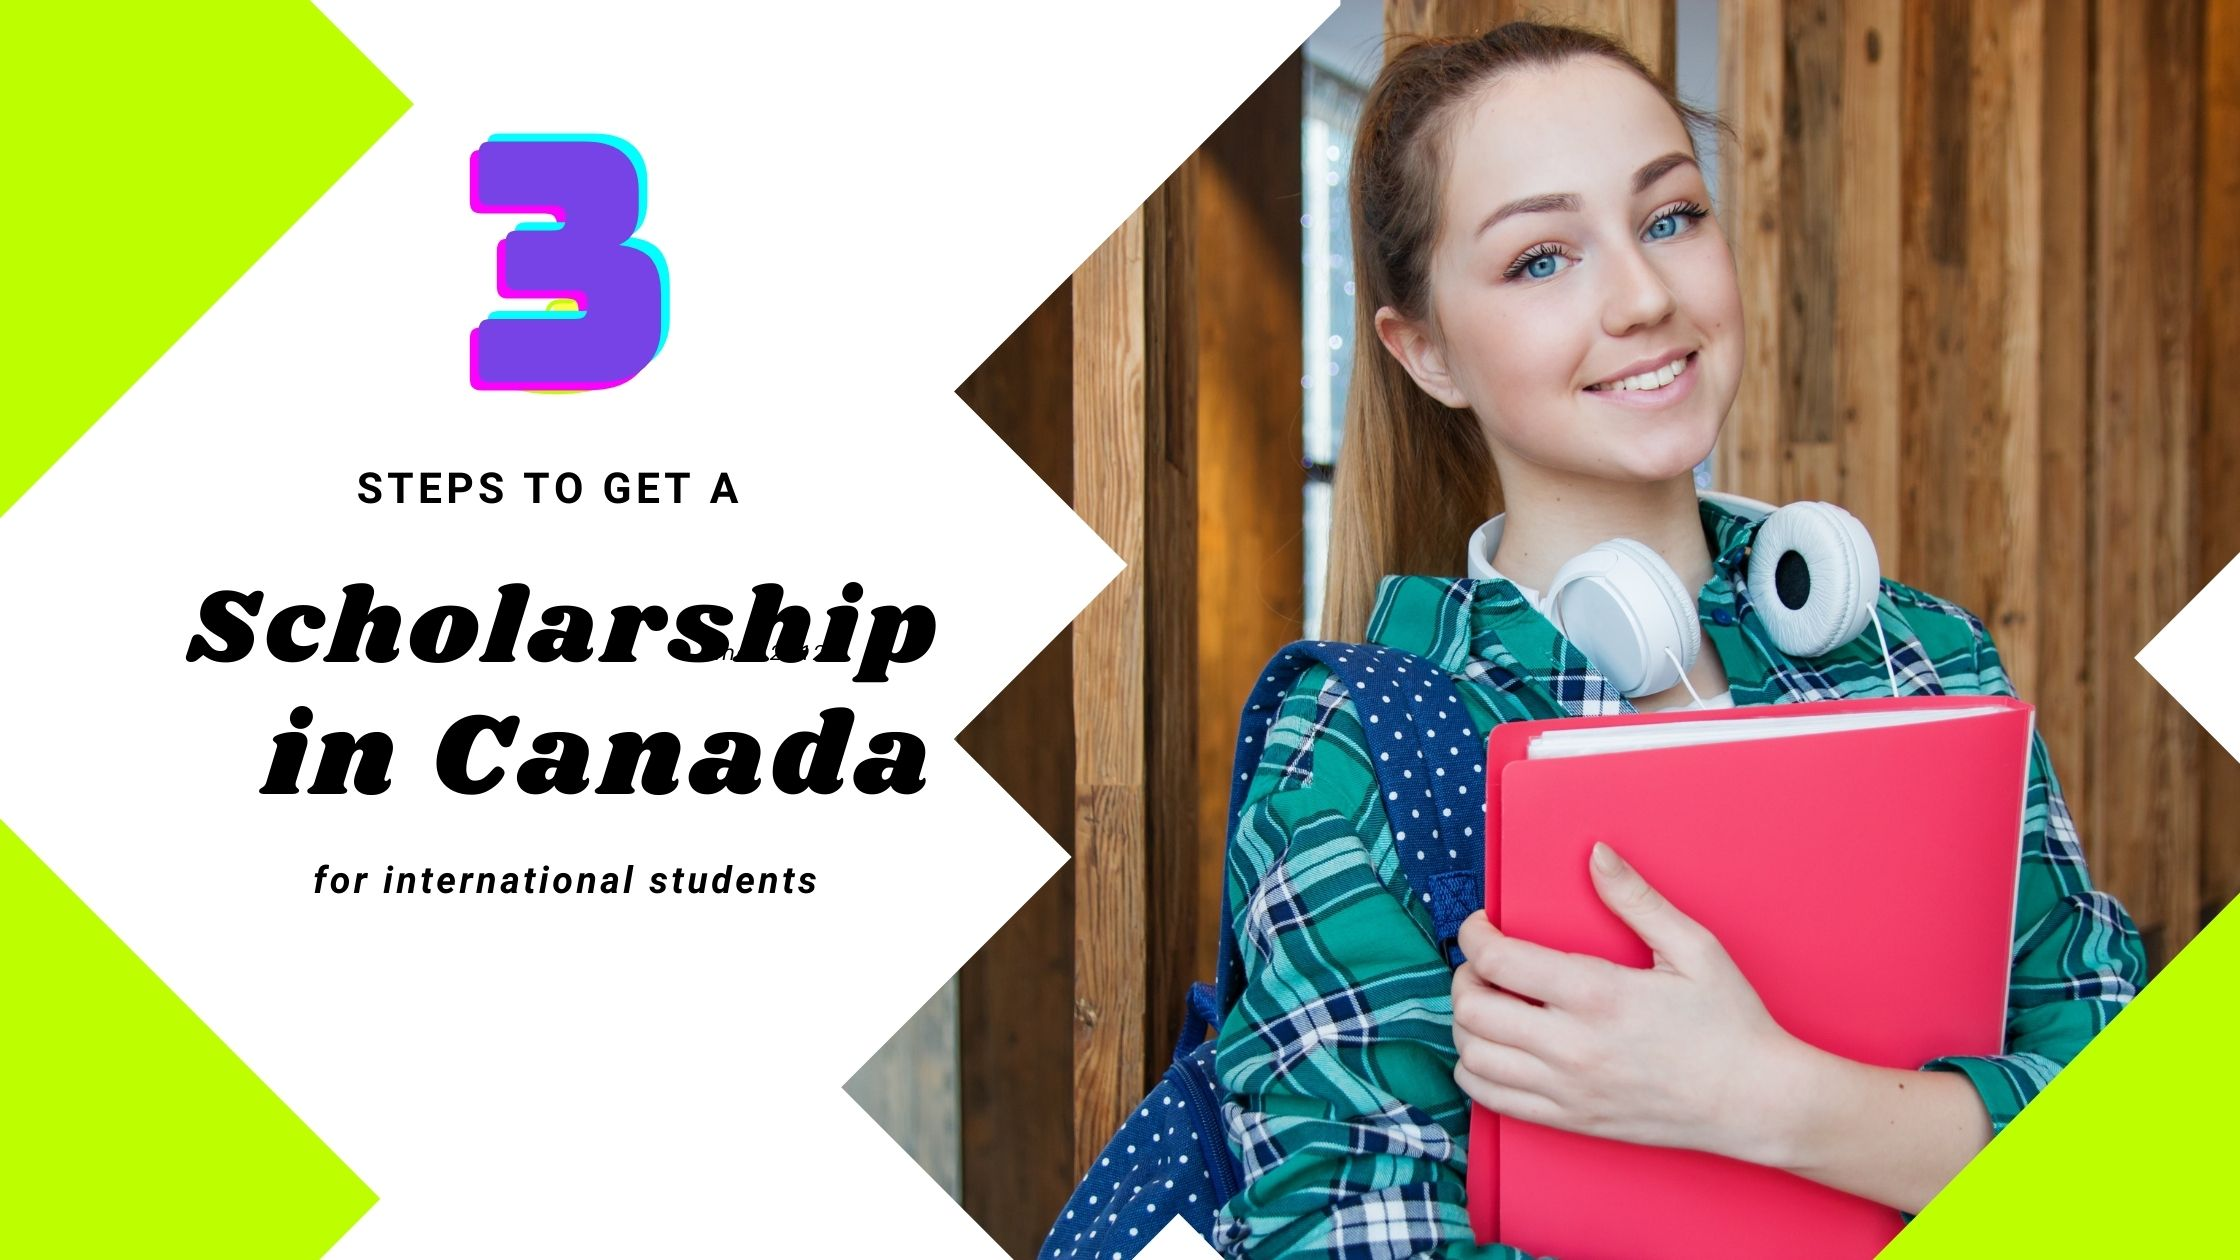 3 Steps to get a scholarship in Canada for International Students